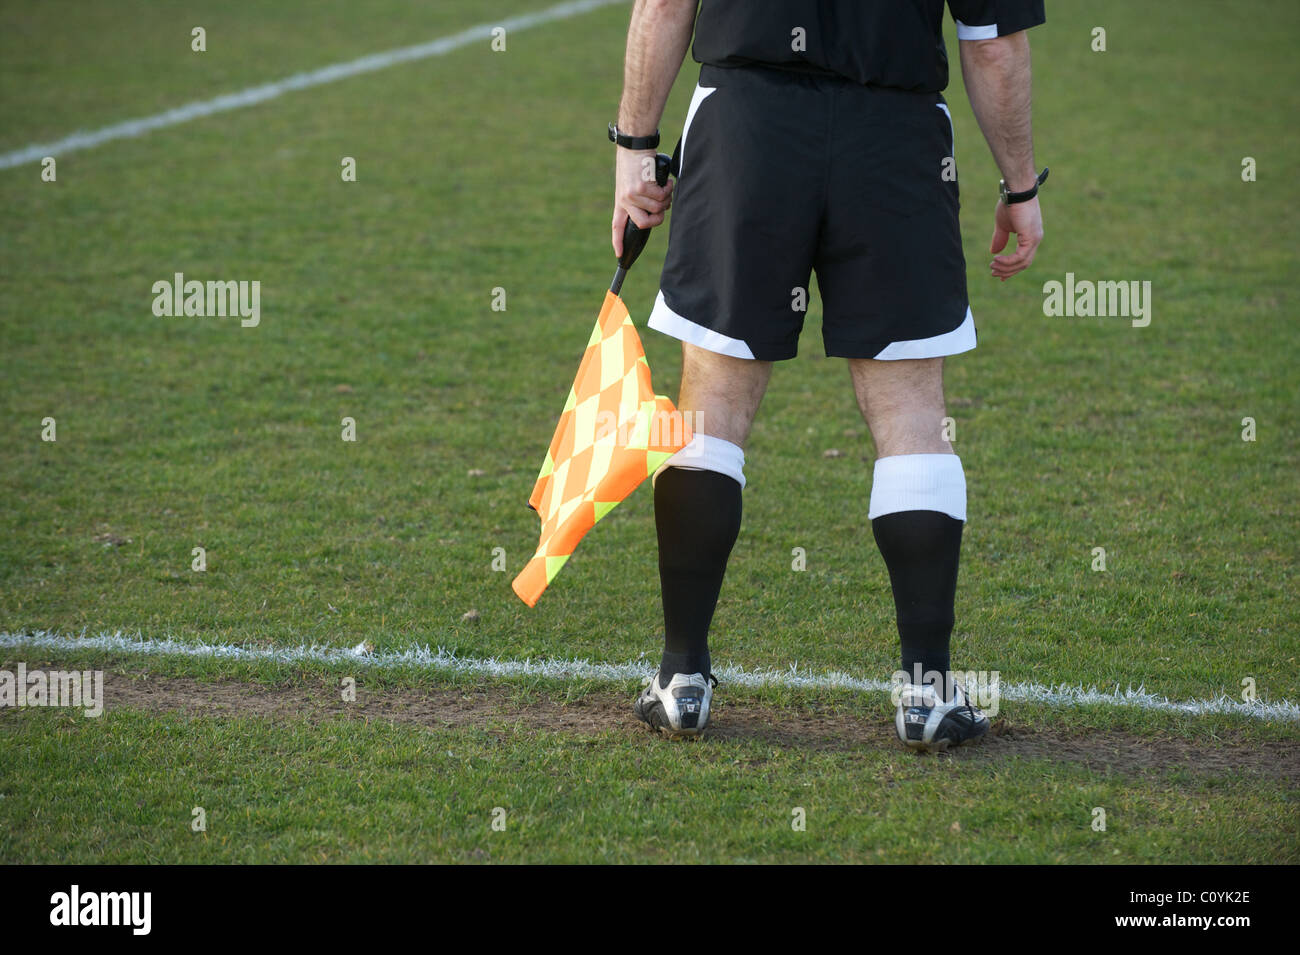 Linesman at a football/ soccer match - Stock Image